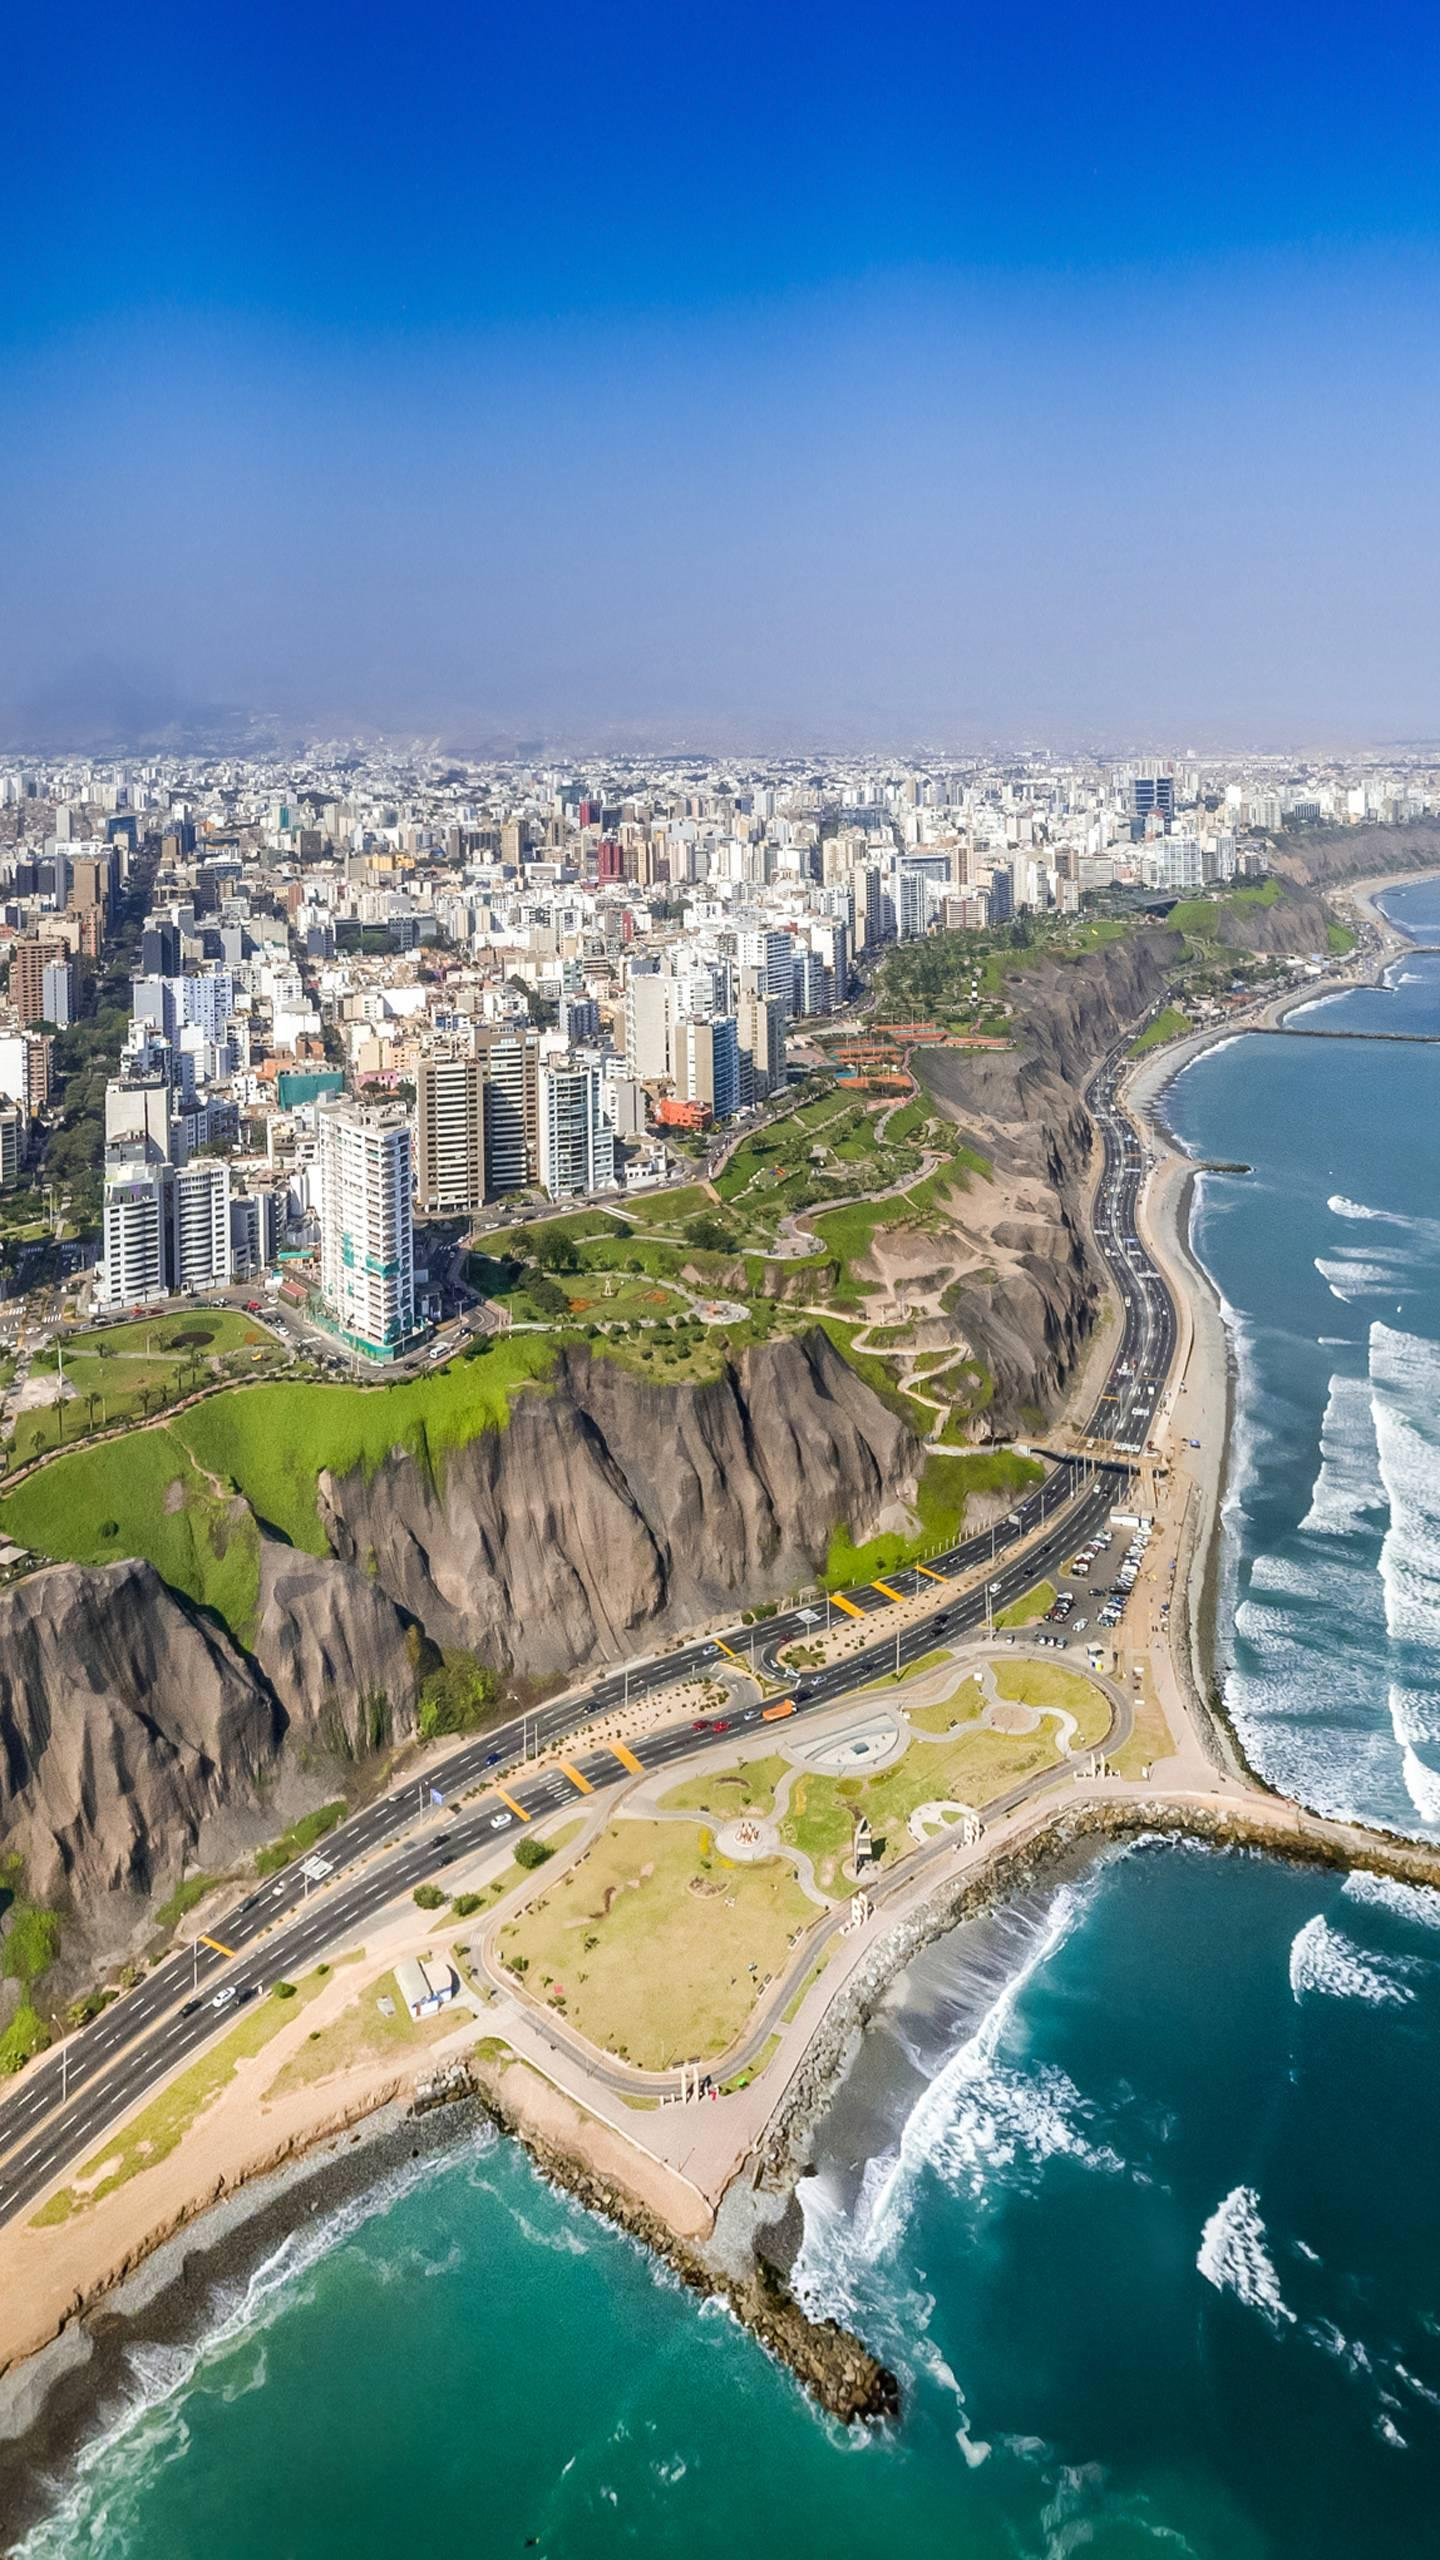 Rain-free capital: Lima. The capital of Peru, the world-famous rain-free city, has no storms all year round.